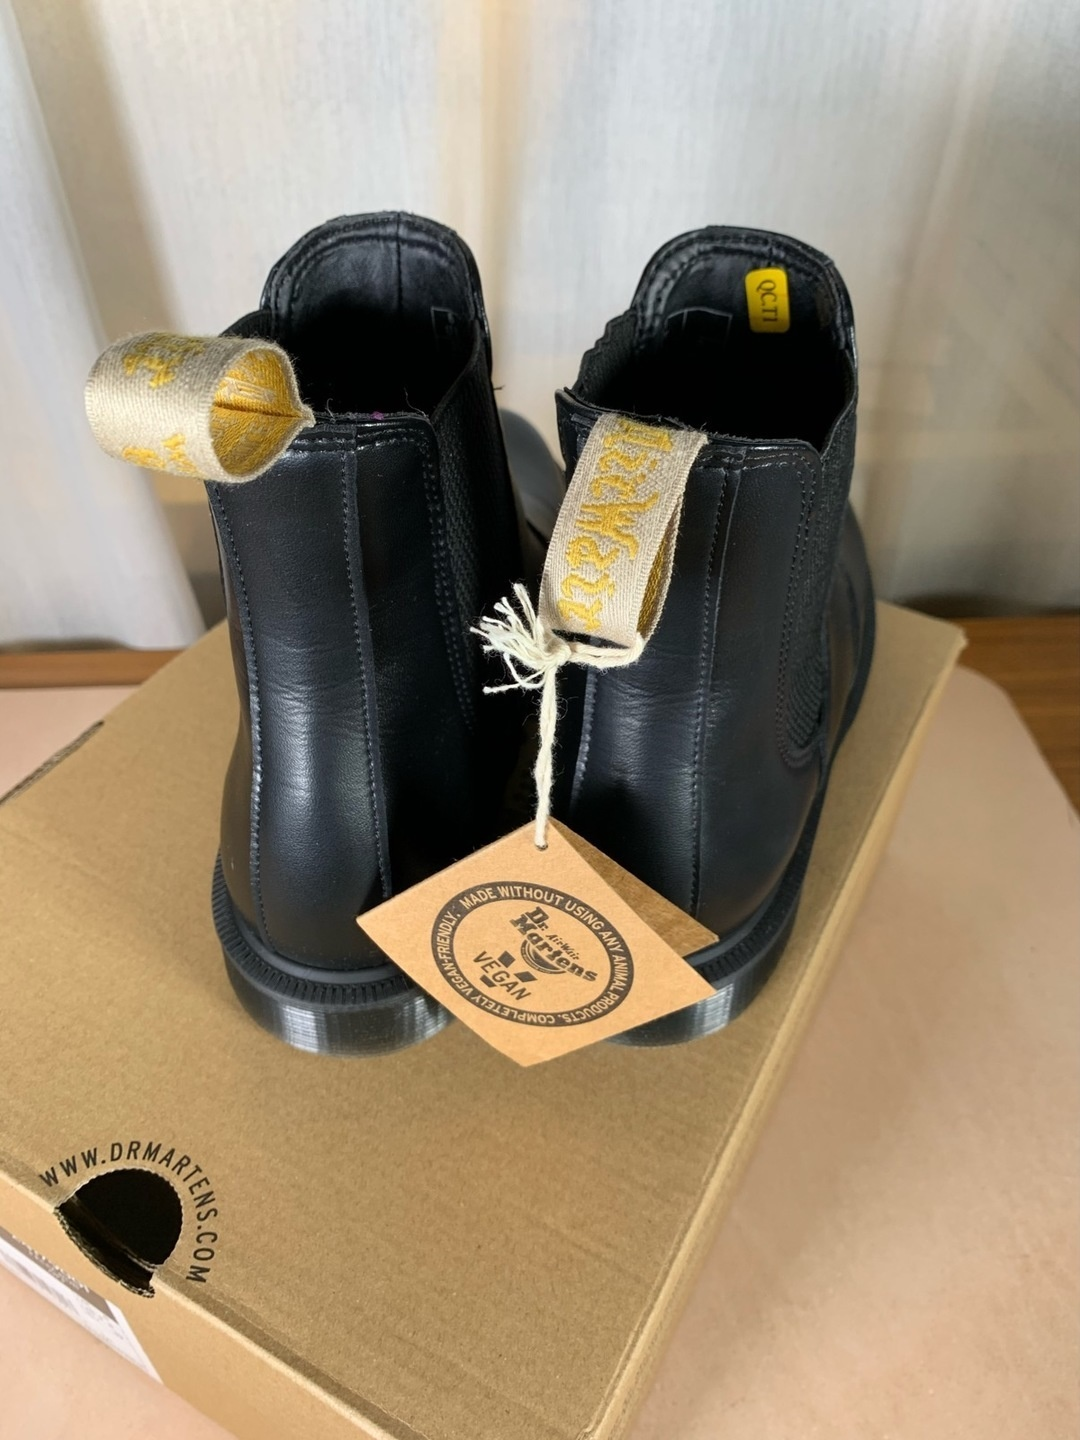 Women's boots - DR. MARTENS photo 3